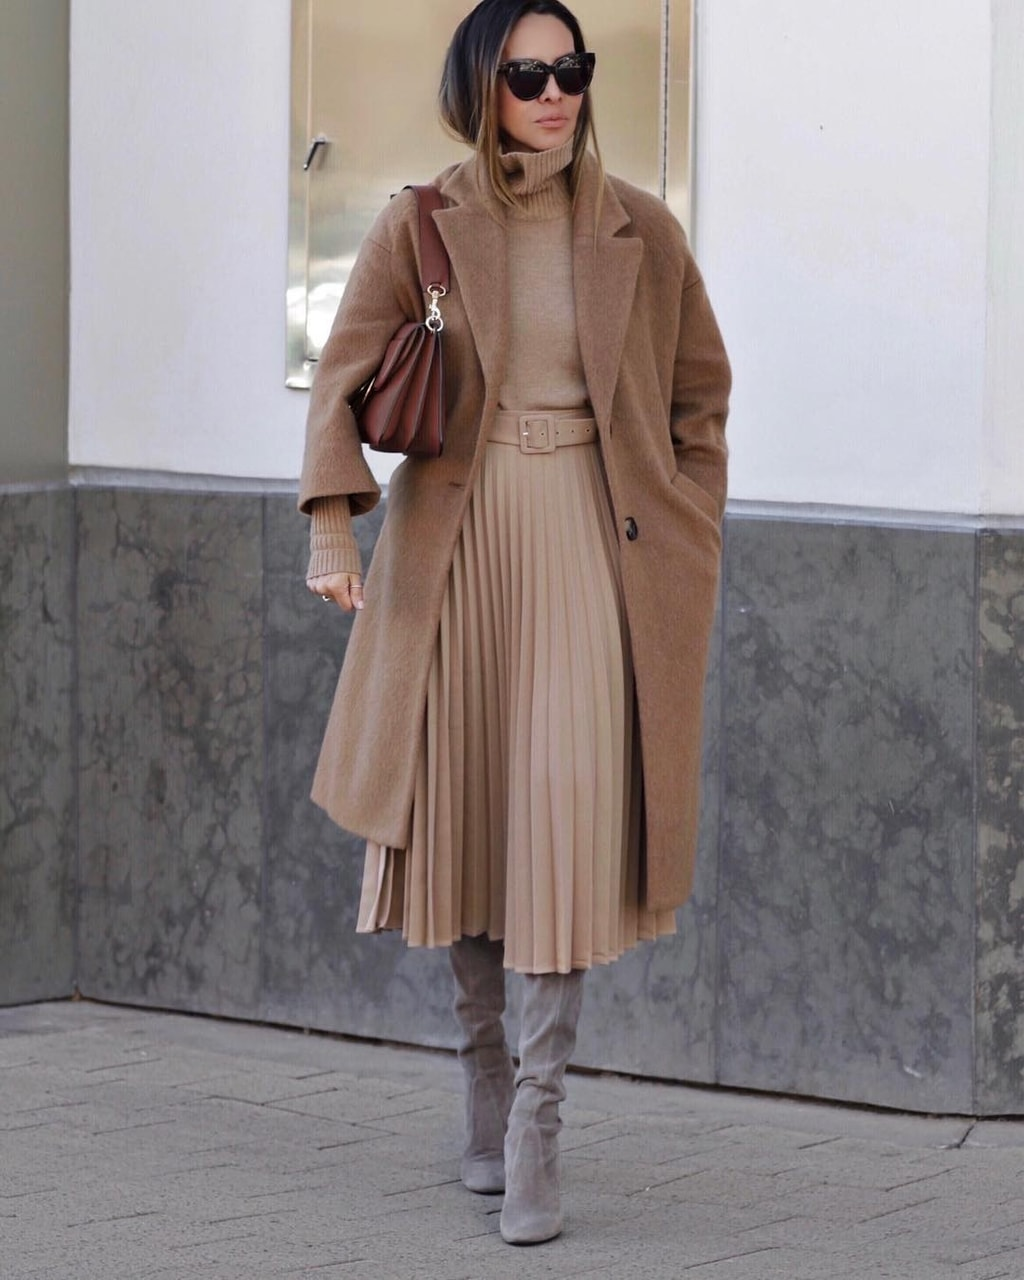 outfit, street style, and blogger image